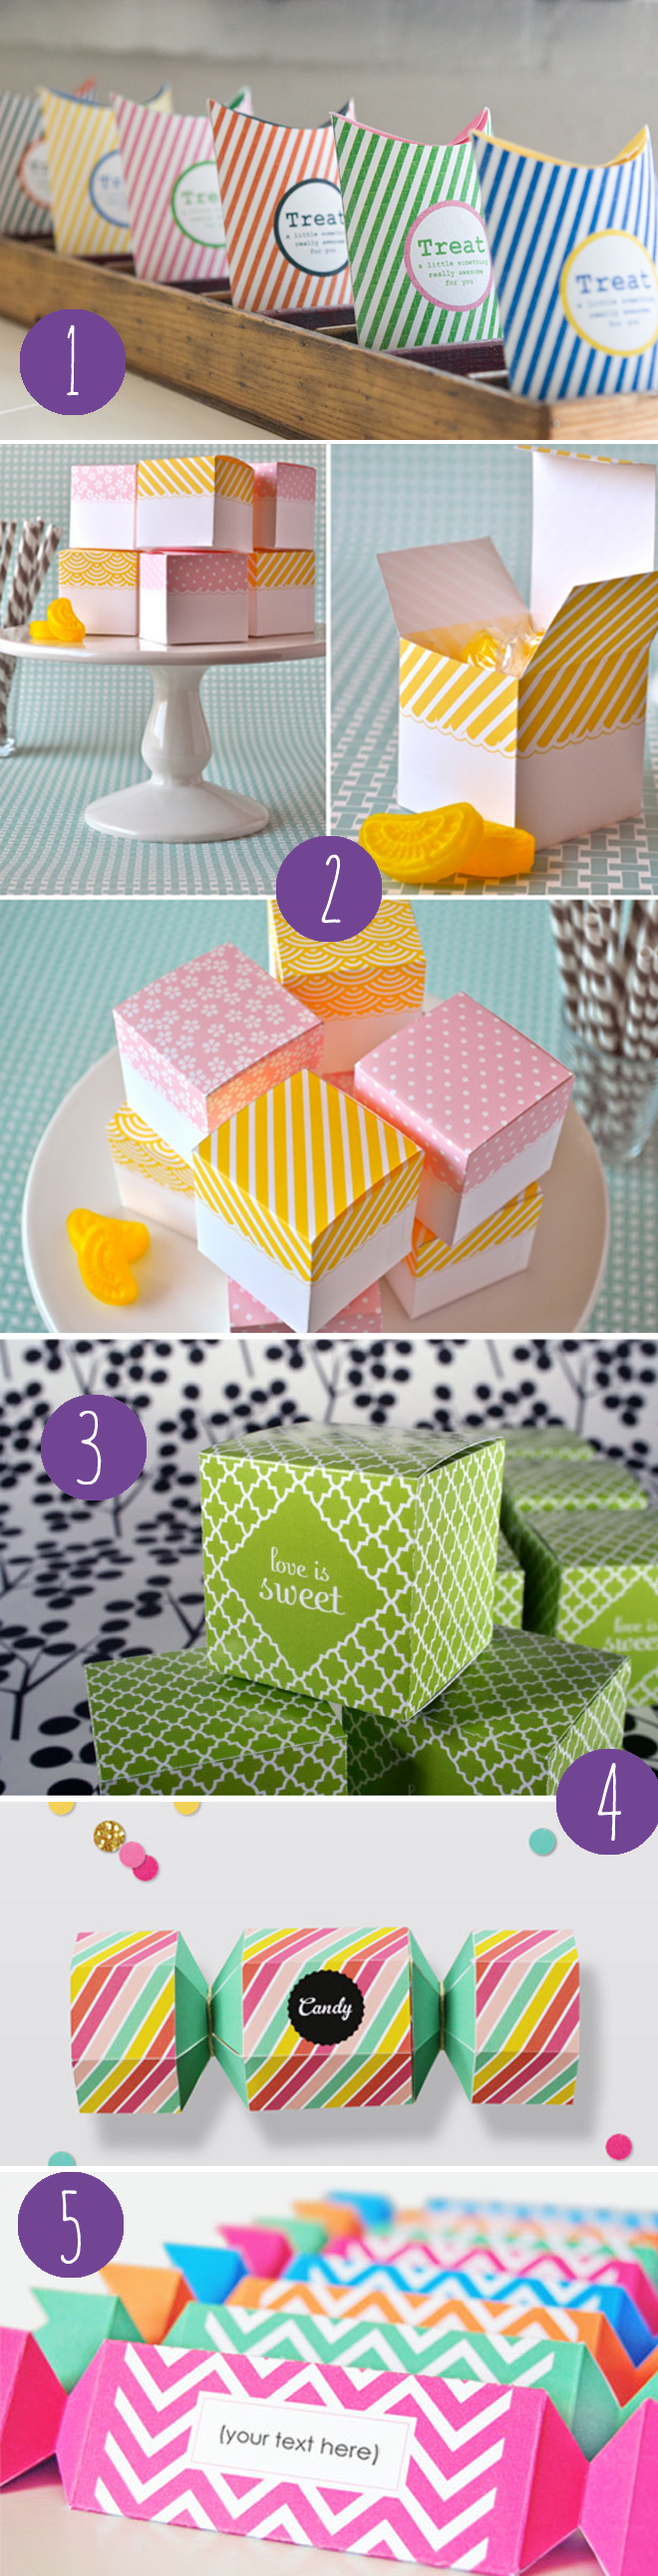 free printable favor boxes for Valentines Day candy